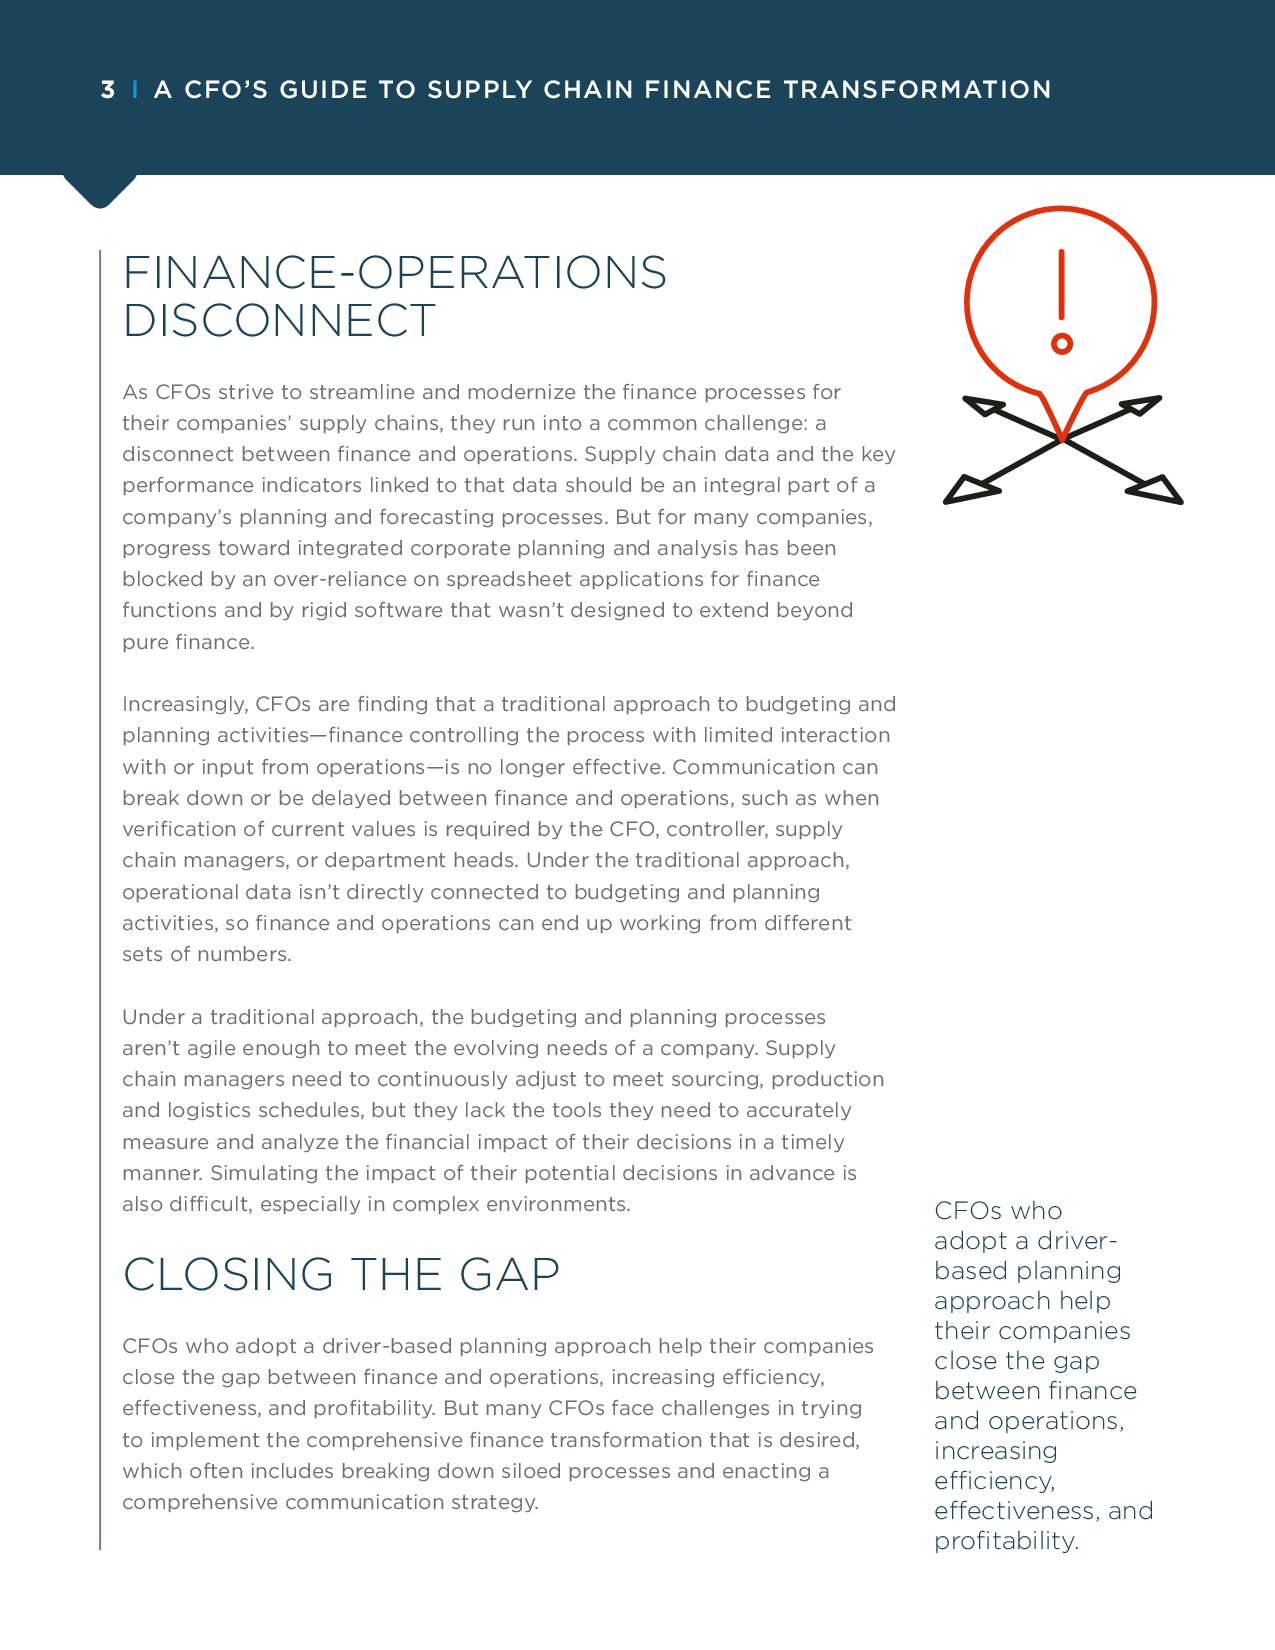 A CFO's Guide to Supply Chain Finance Transformation | Page 3